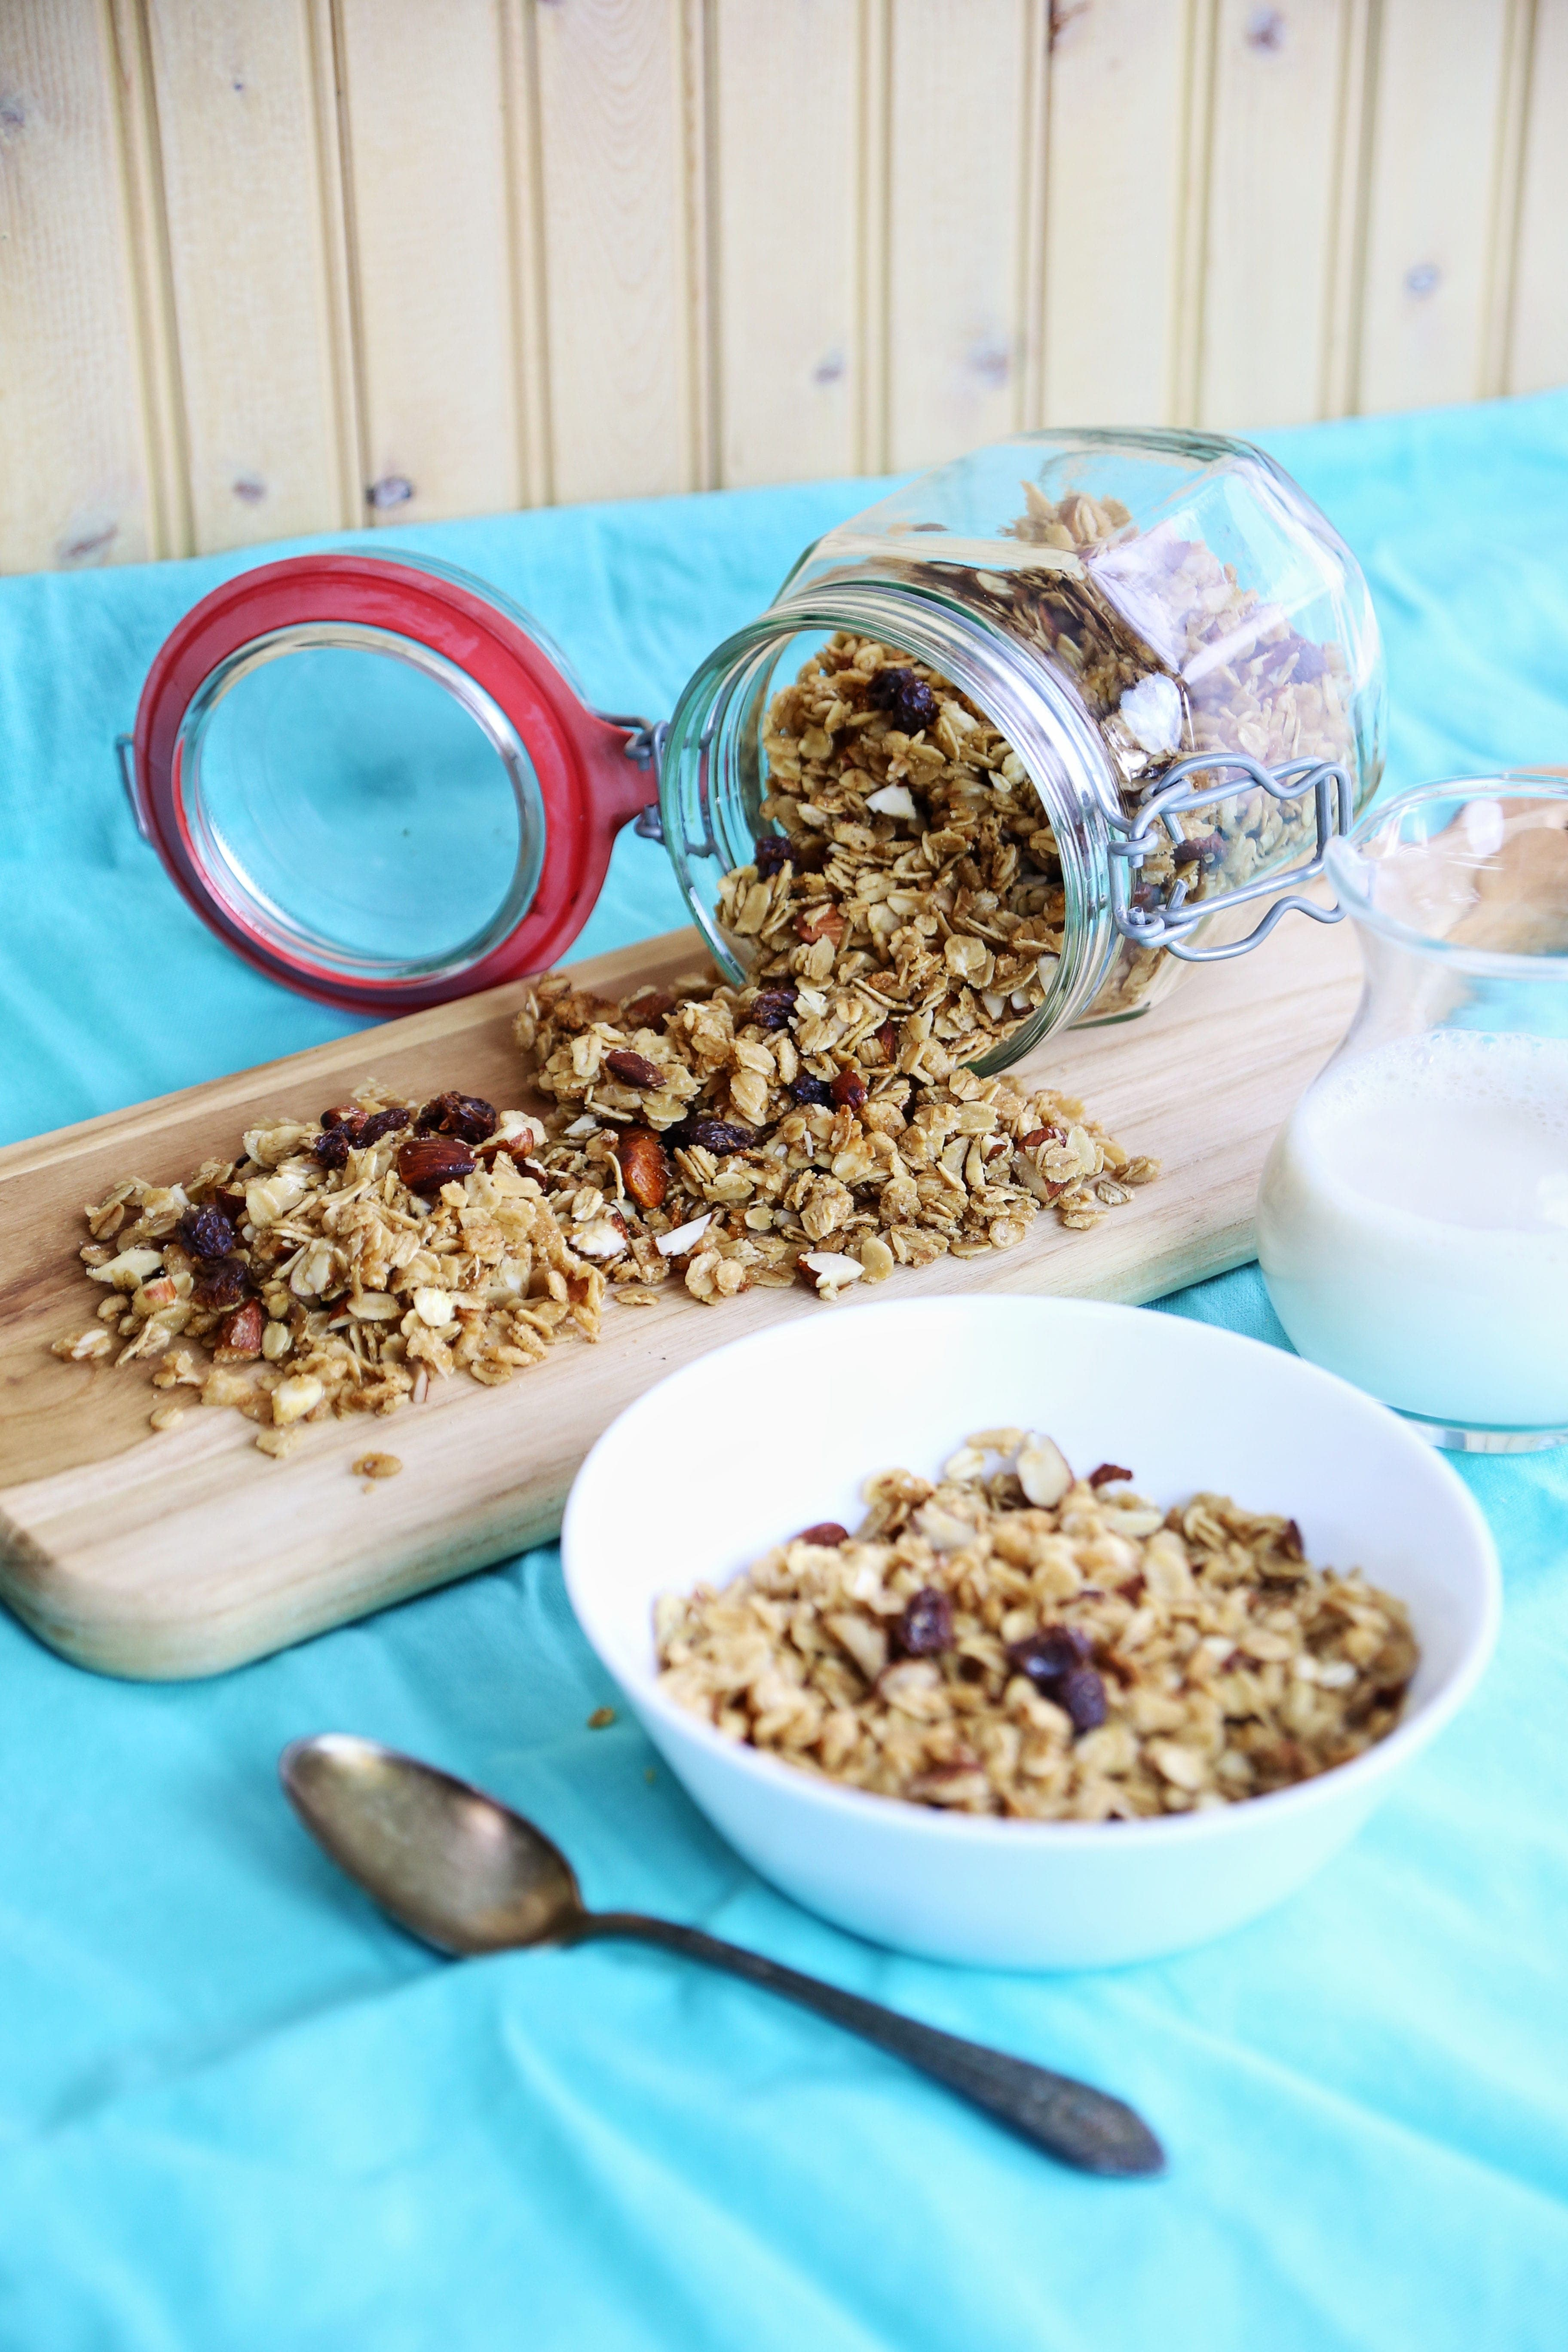 Making Granola in the Crockpot keeps your kitchen cool!